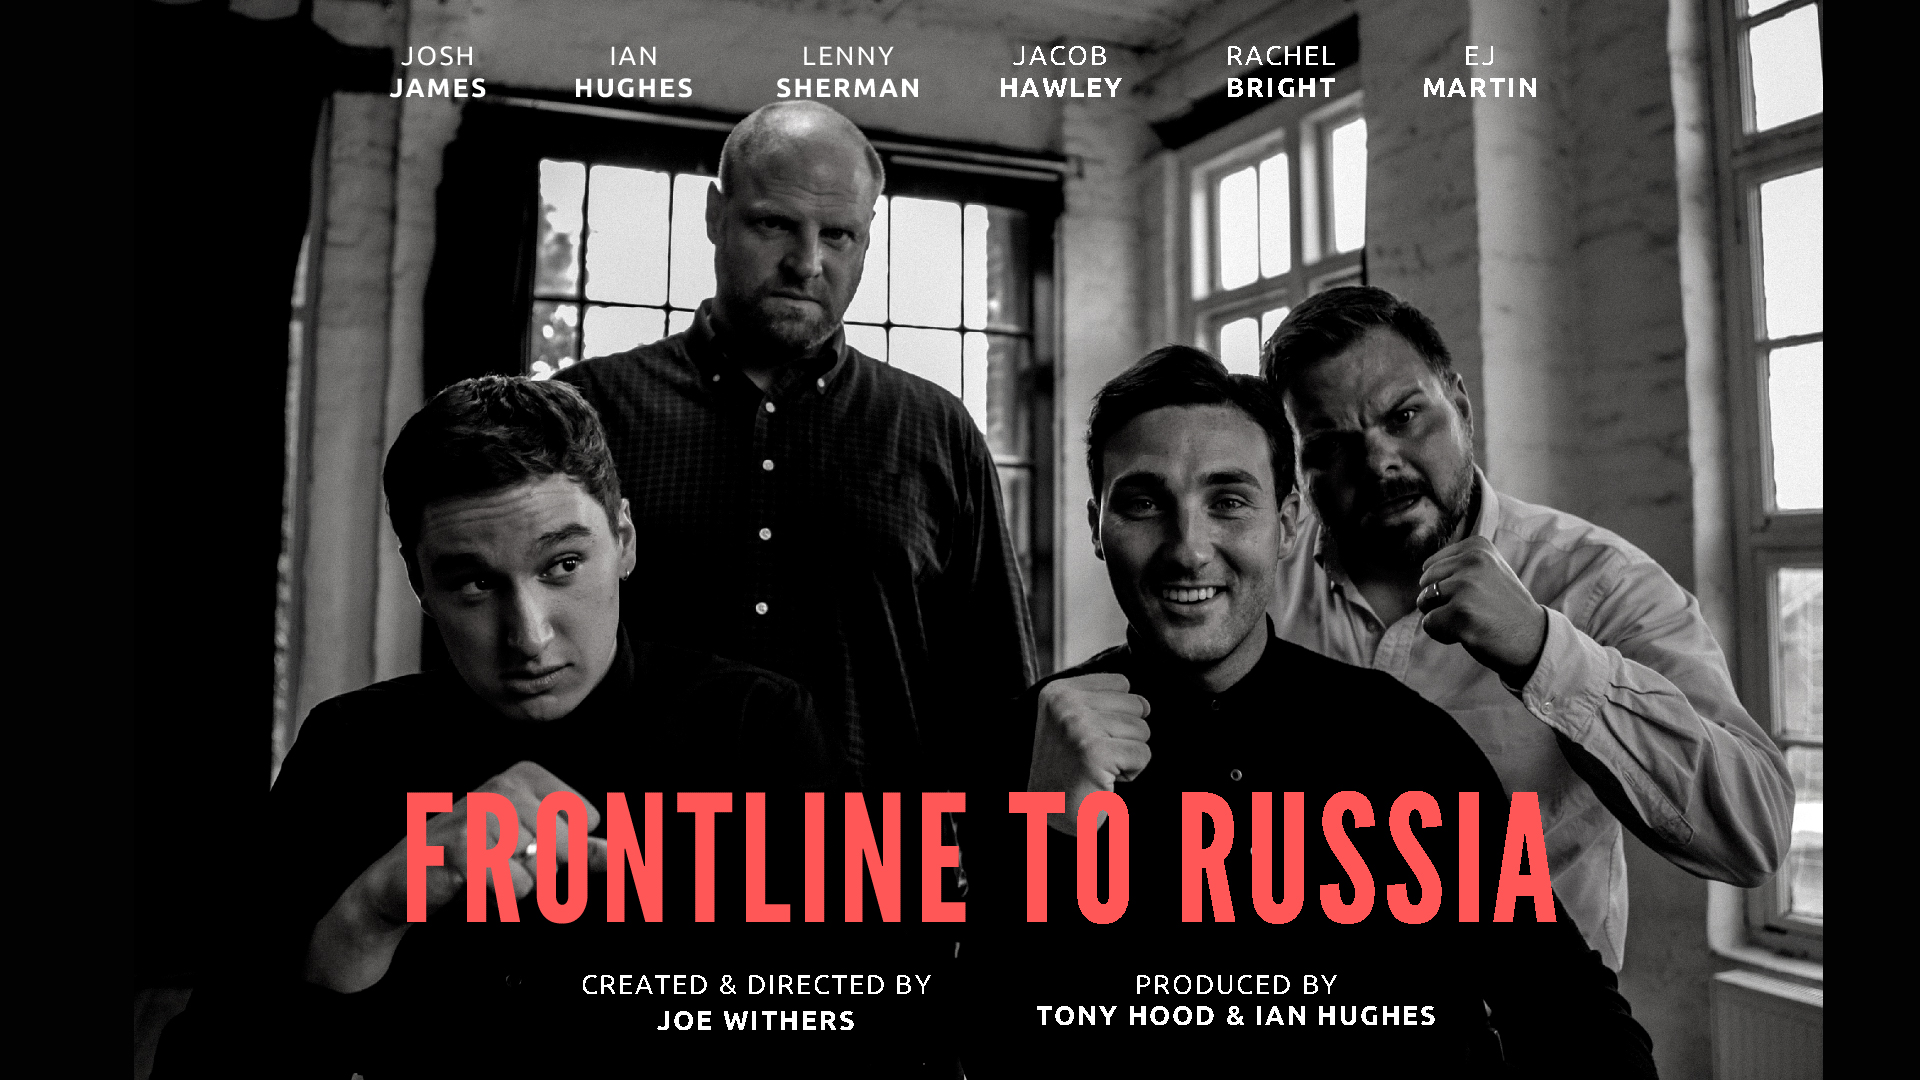 Frontline to Russia